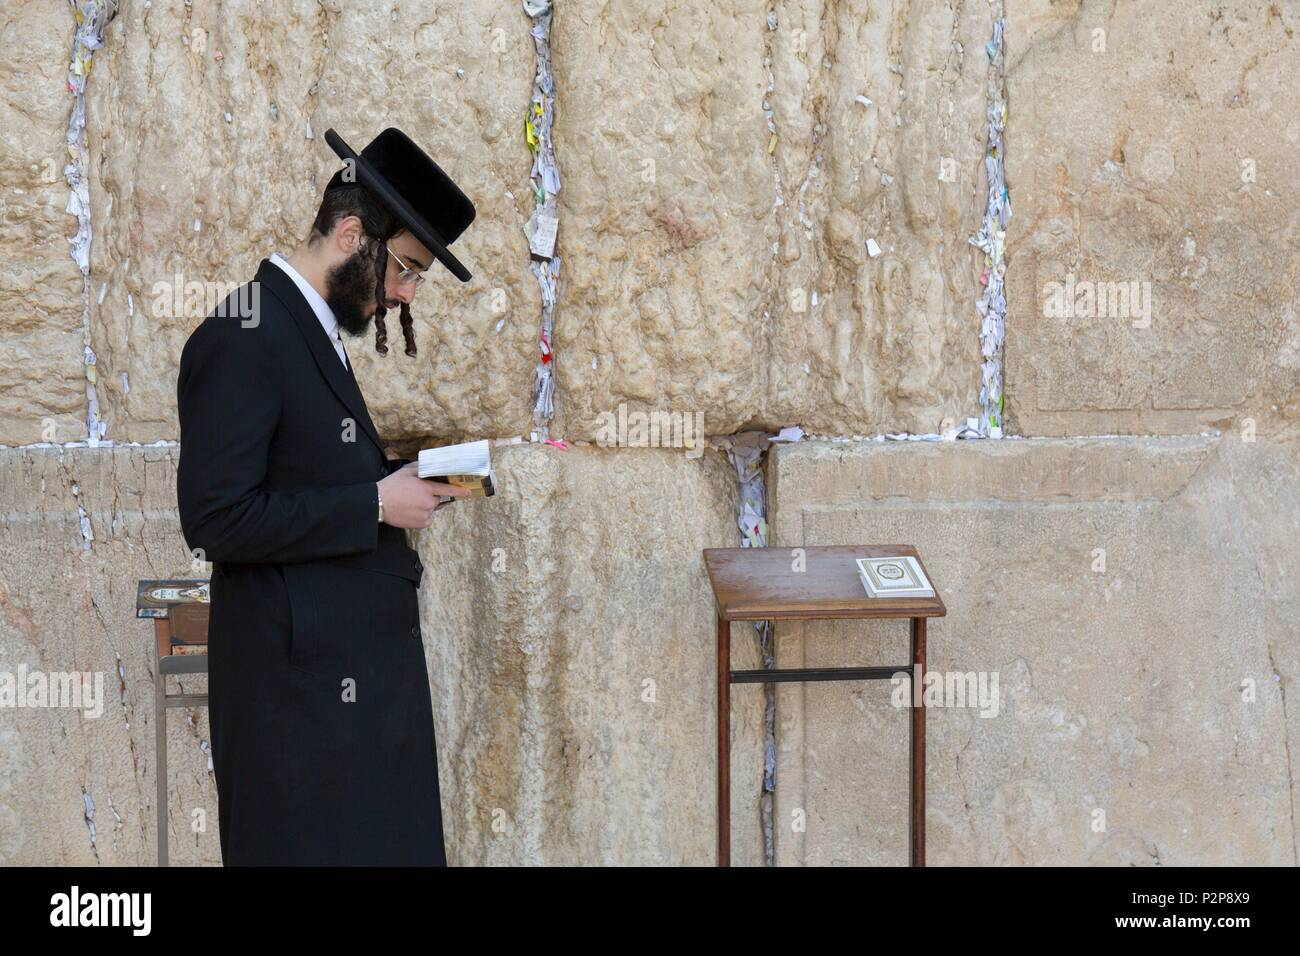 Israel, Jerusalem, UNESCO World Heritage Old Town, Western Wall or Wailing Wall, Praying Man, Hasidic Jew - Stock Image